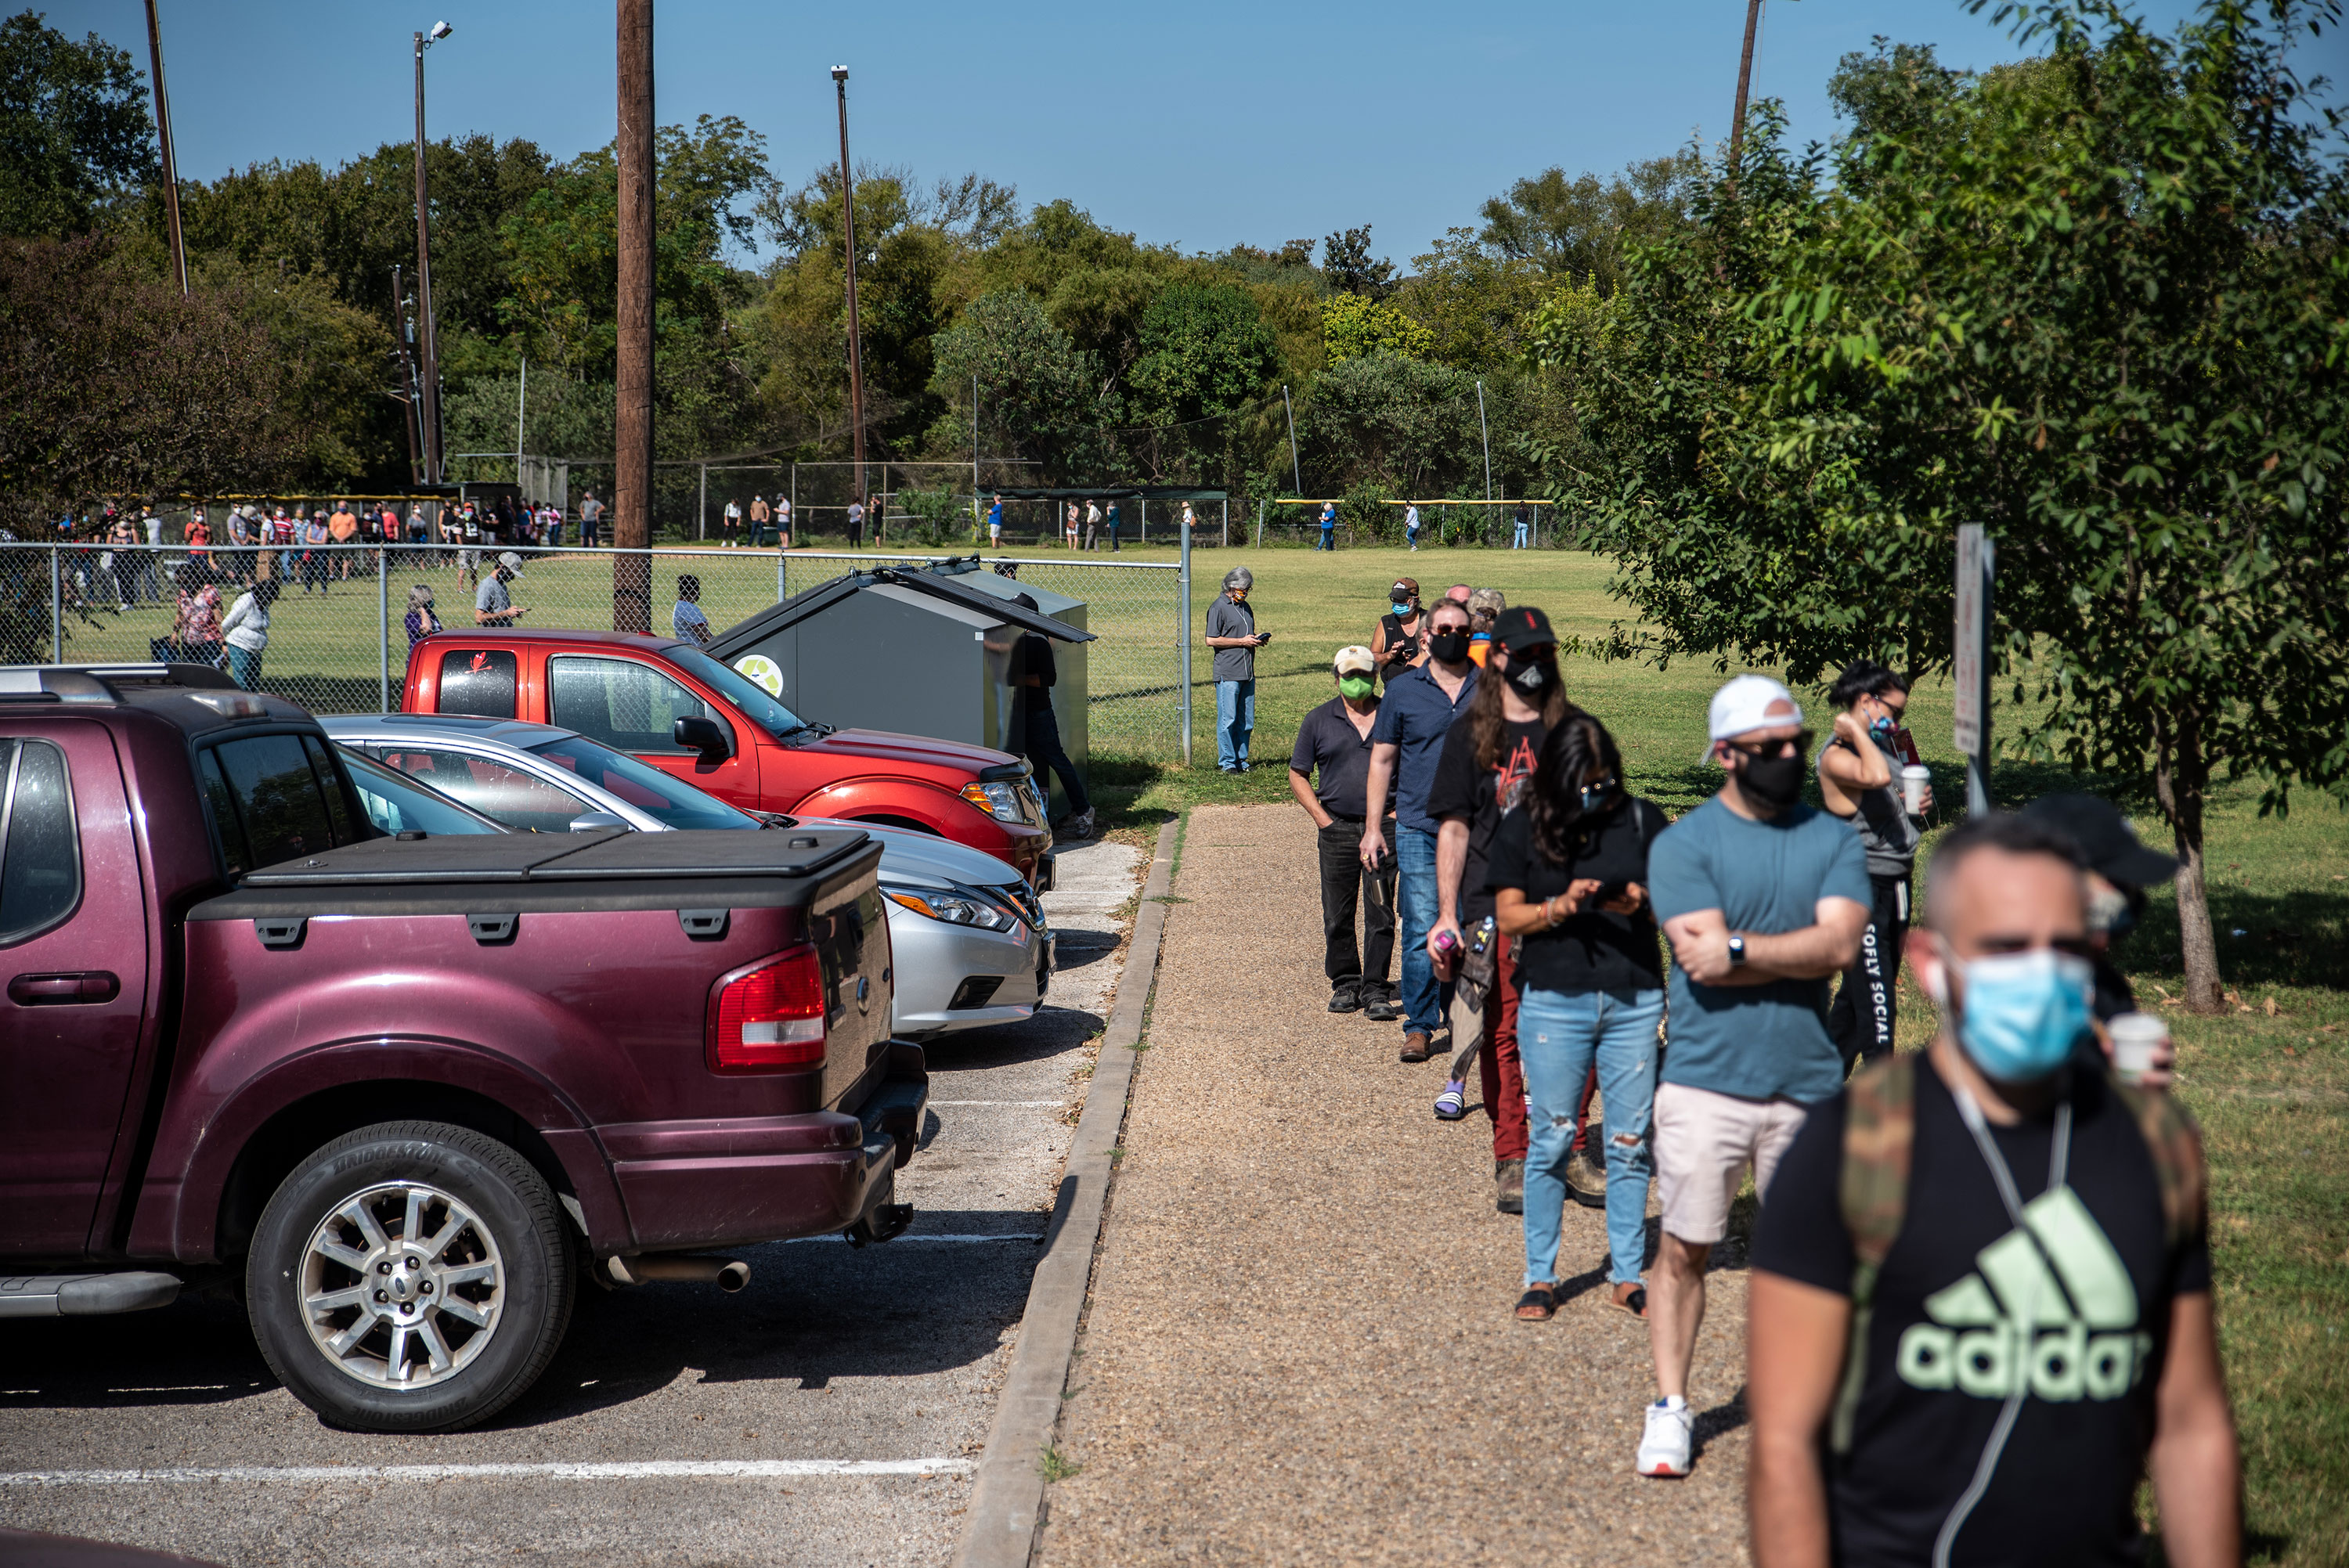 Voters wait in line to vote in Austin, Texas, on October 13.